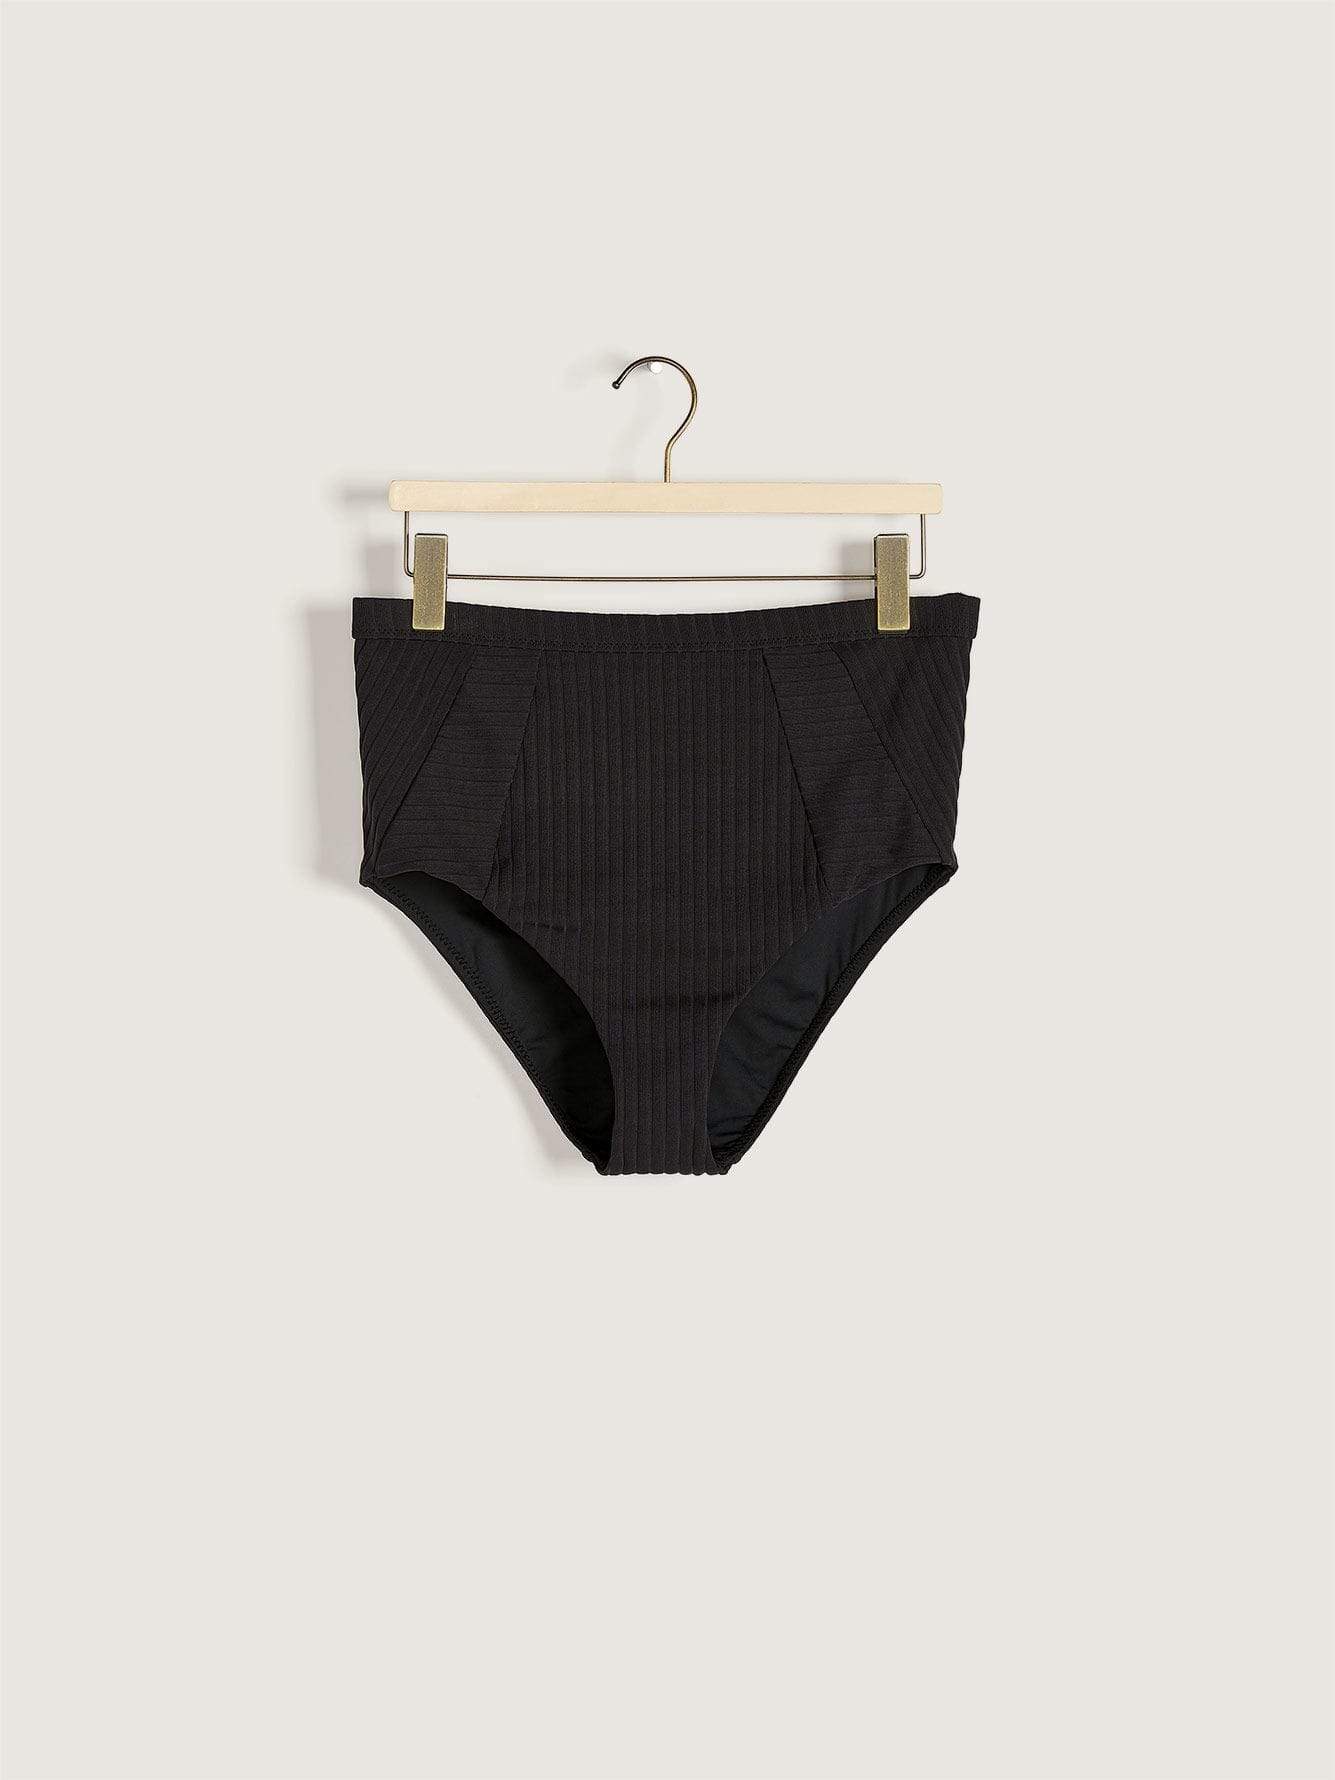 BECCA ETC, Loreto - Textured High Waist Swim Brief